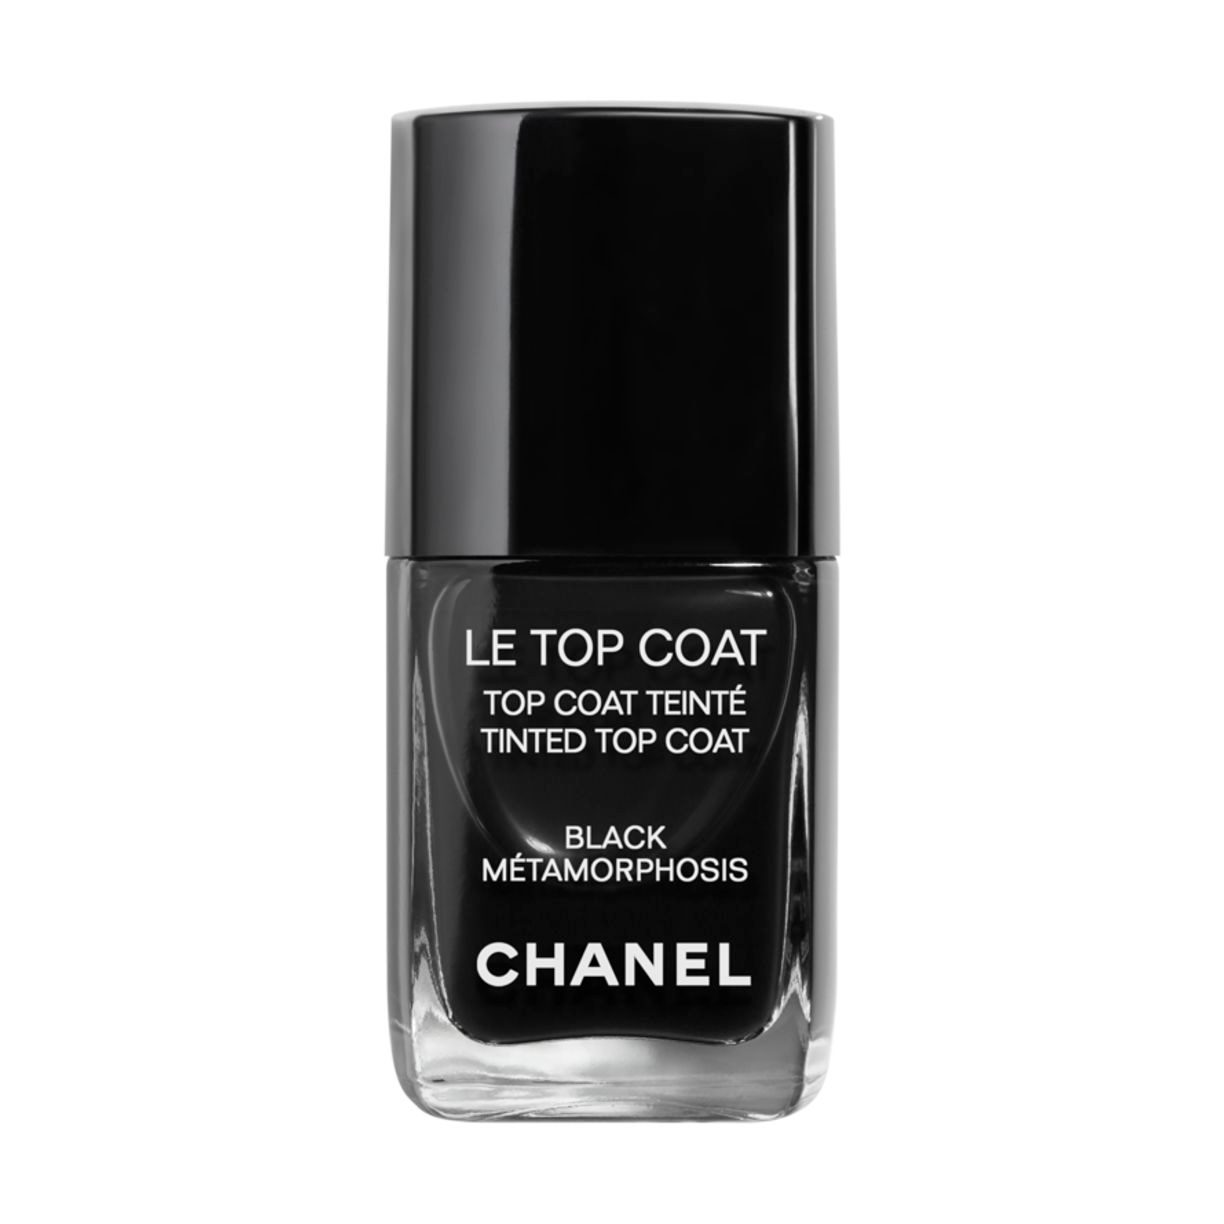 LE TOP COAT TOP COAT TEINTÉ